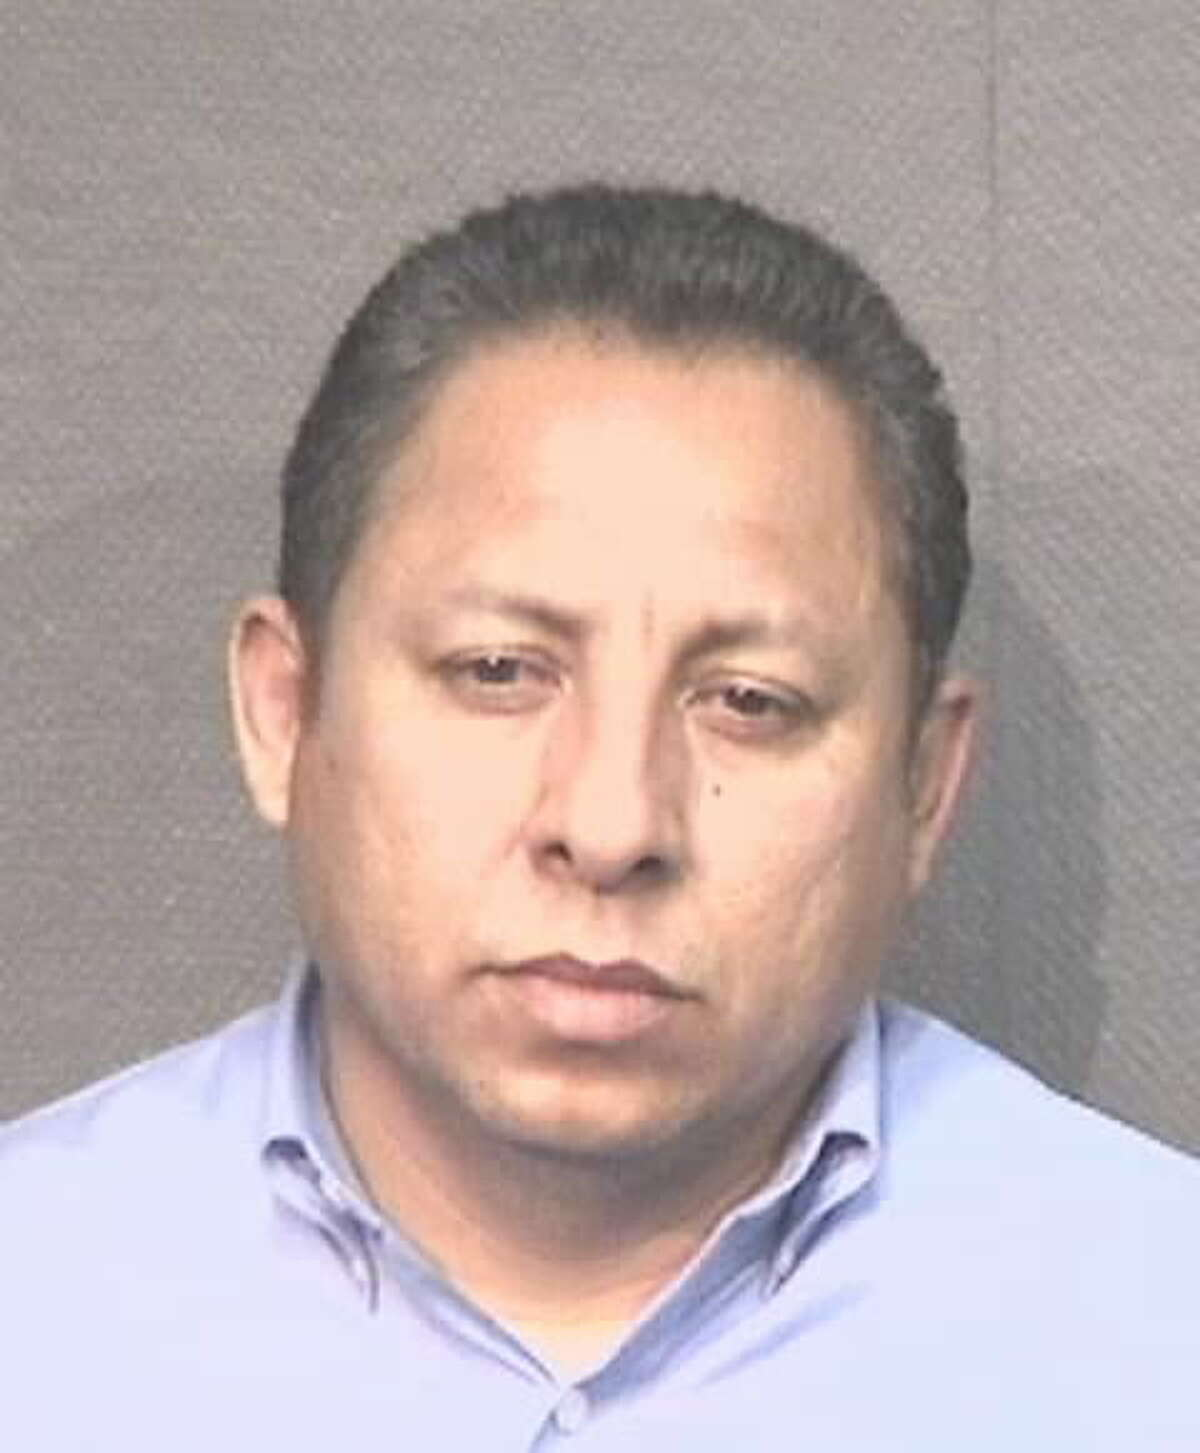 Arnoldo Reyna was arrested on a sex-trade related crime in August, 2018.